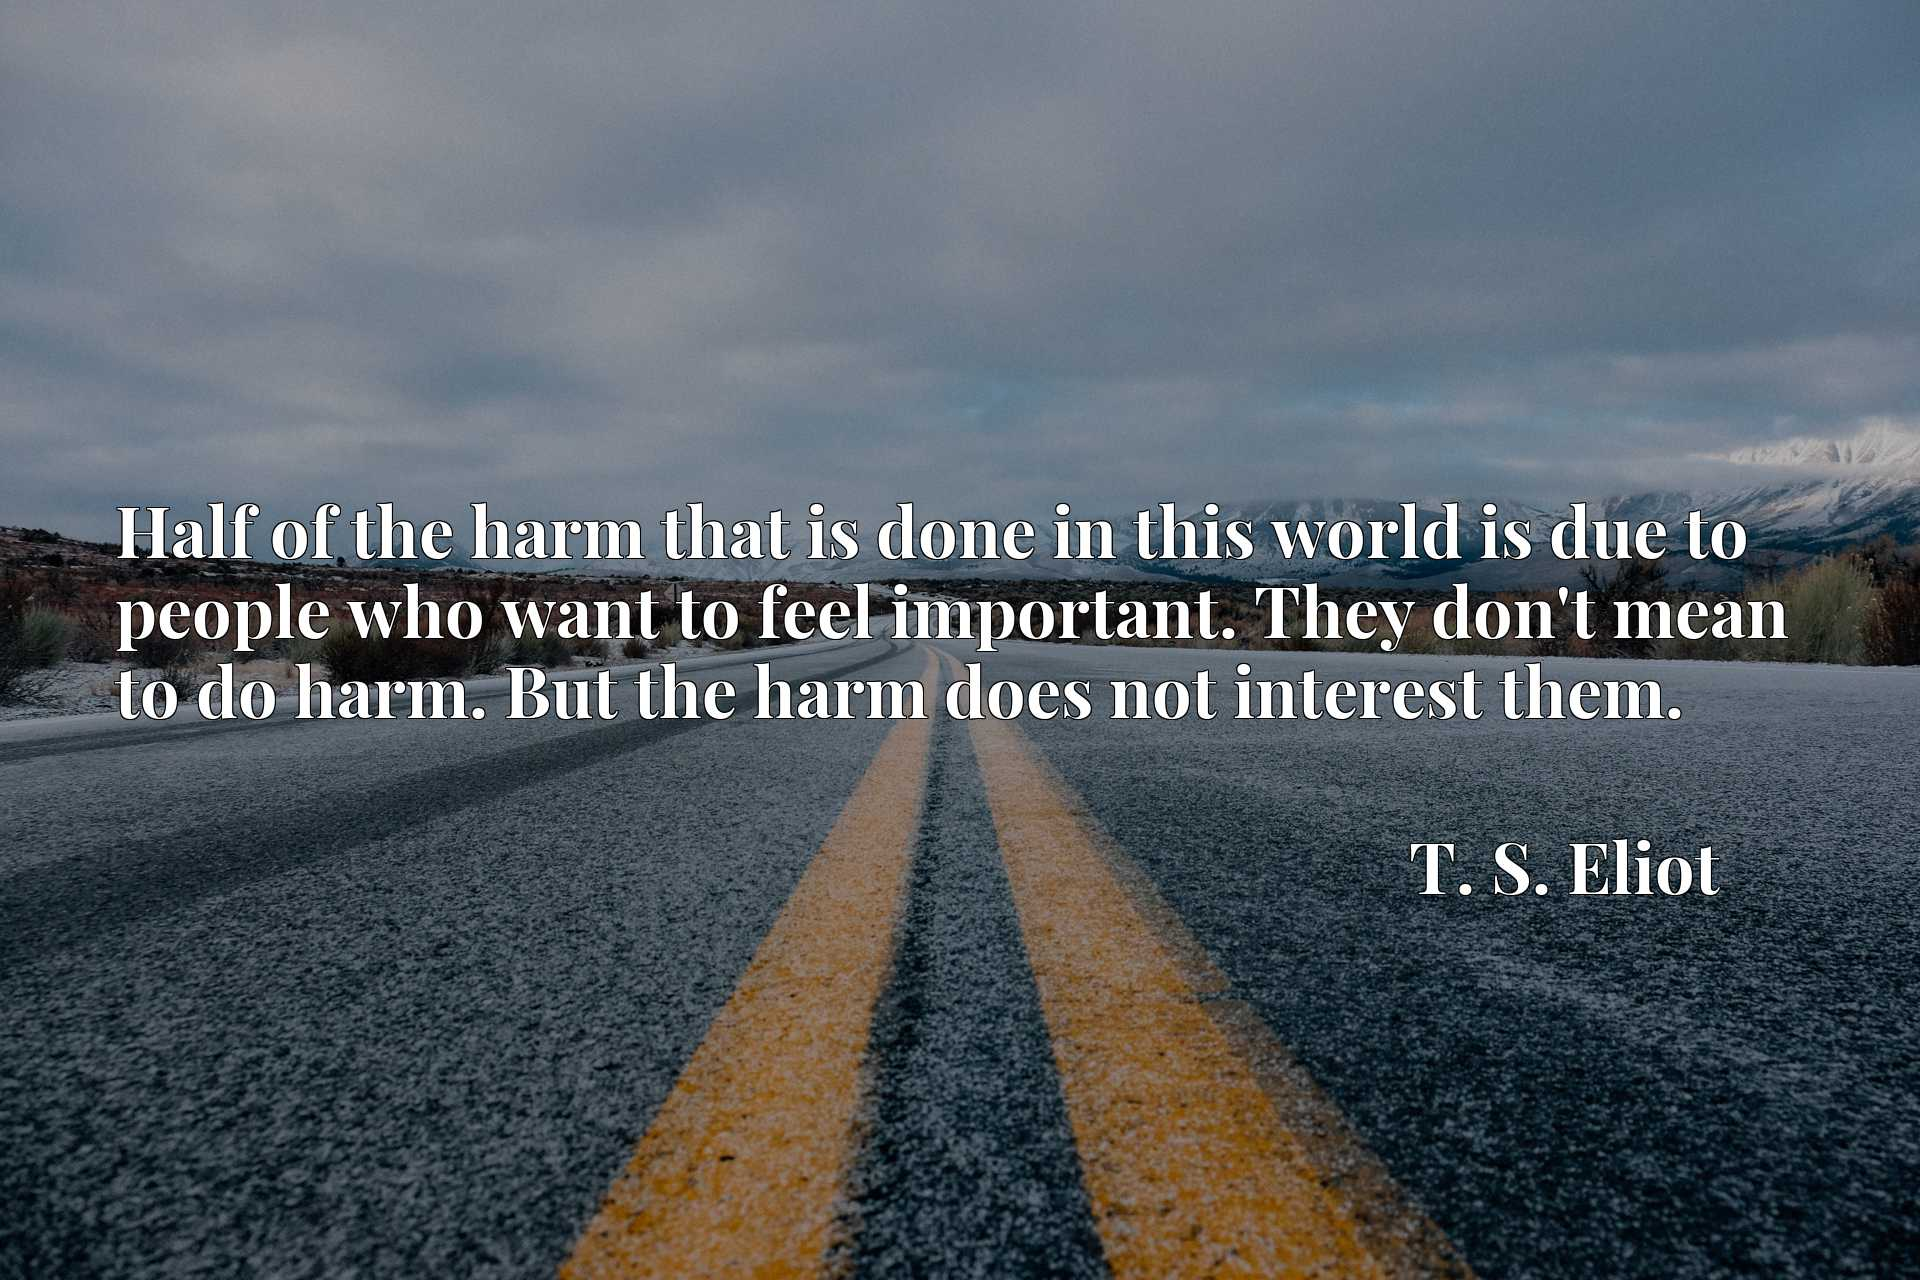 Half of the harm that is done in this world is due to people who want to feel important. They don't mean to do harm. But the harm does not interest them.